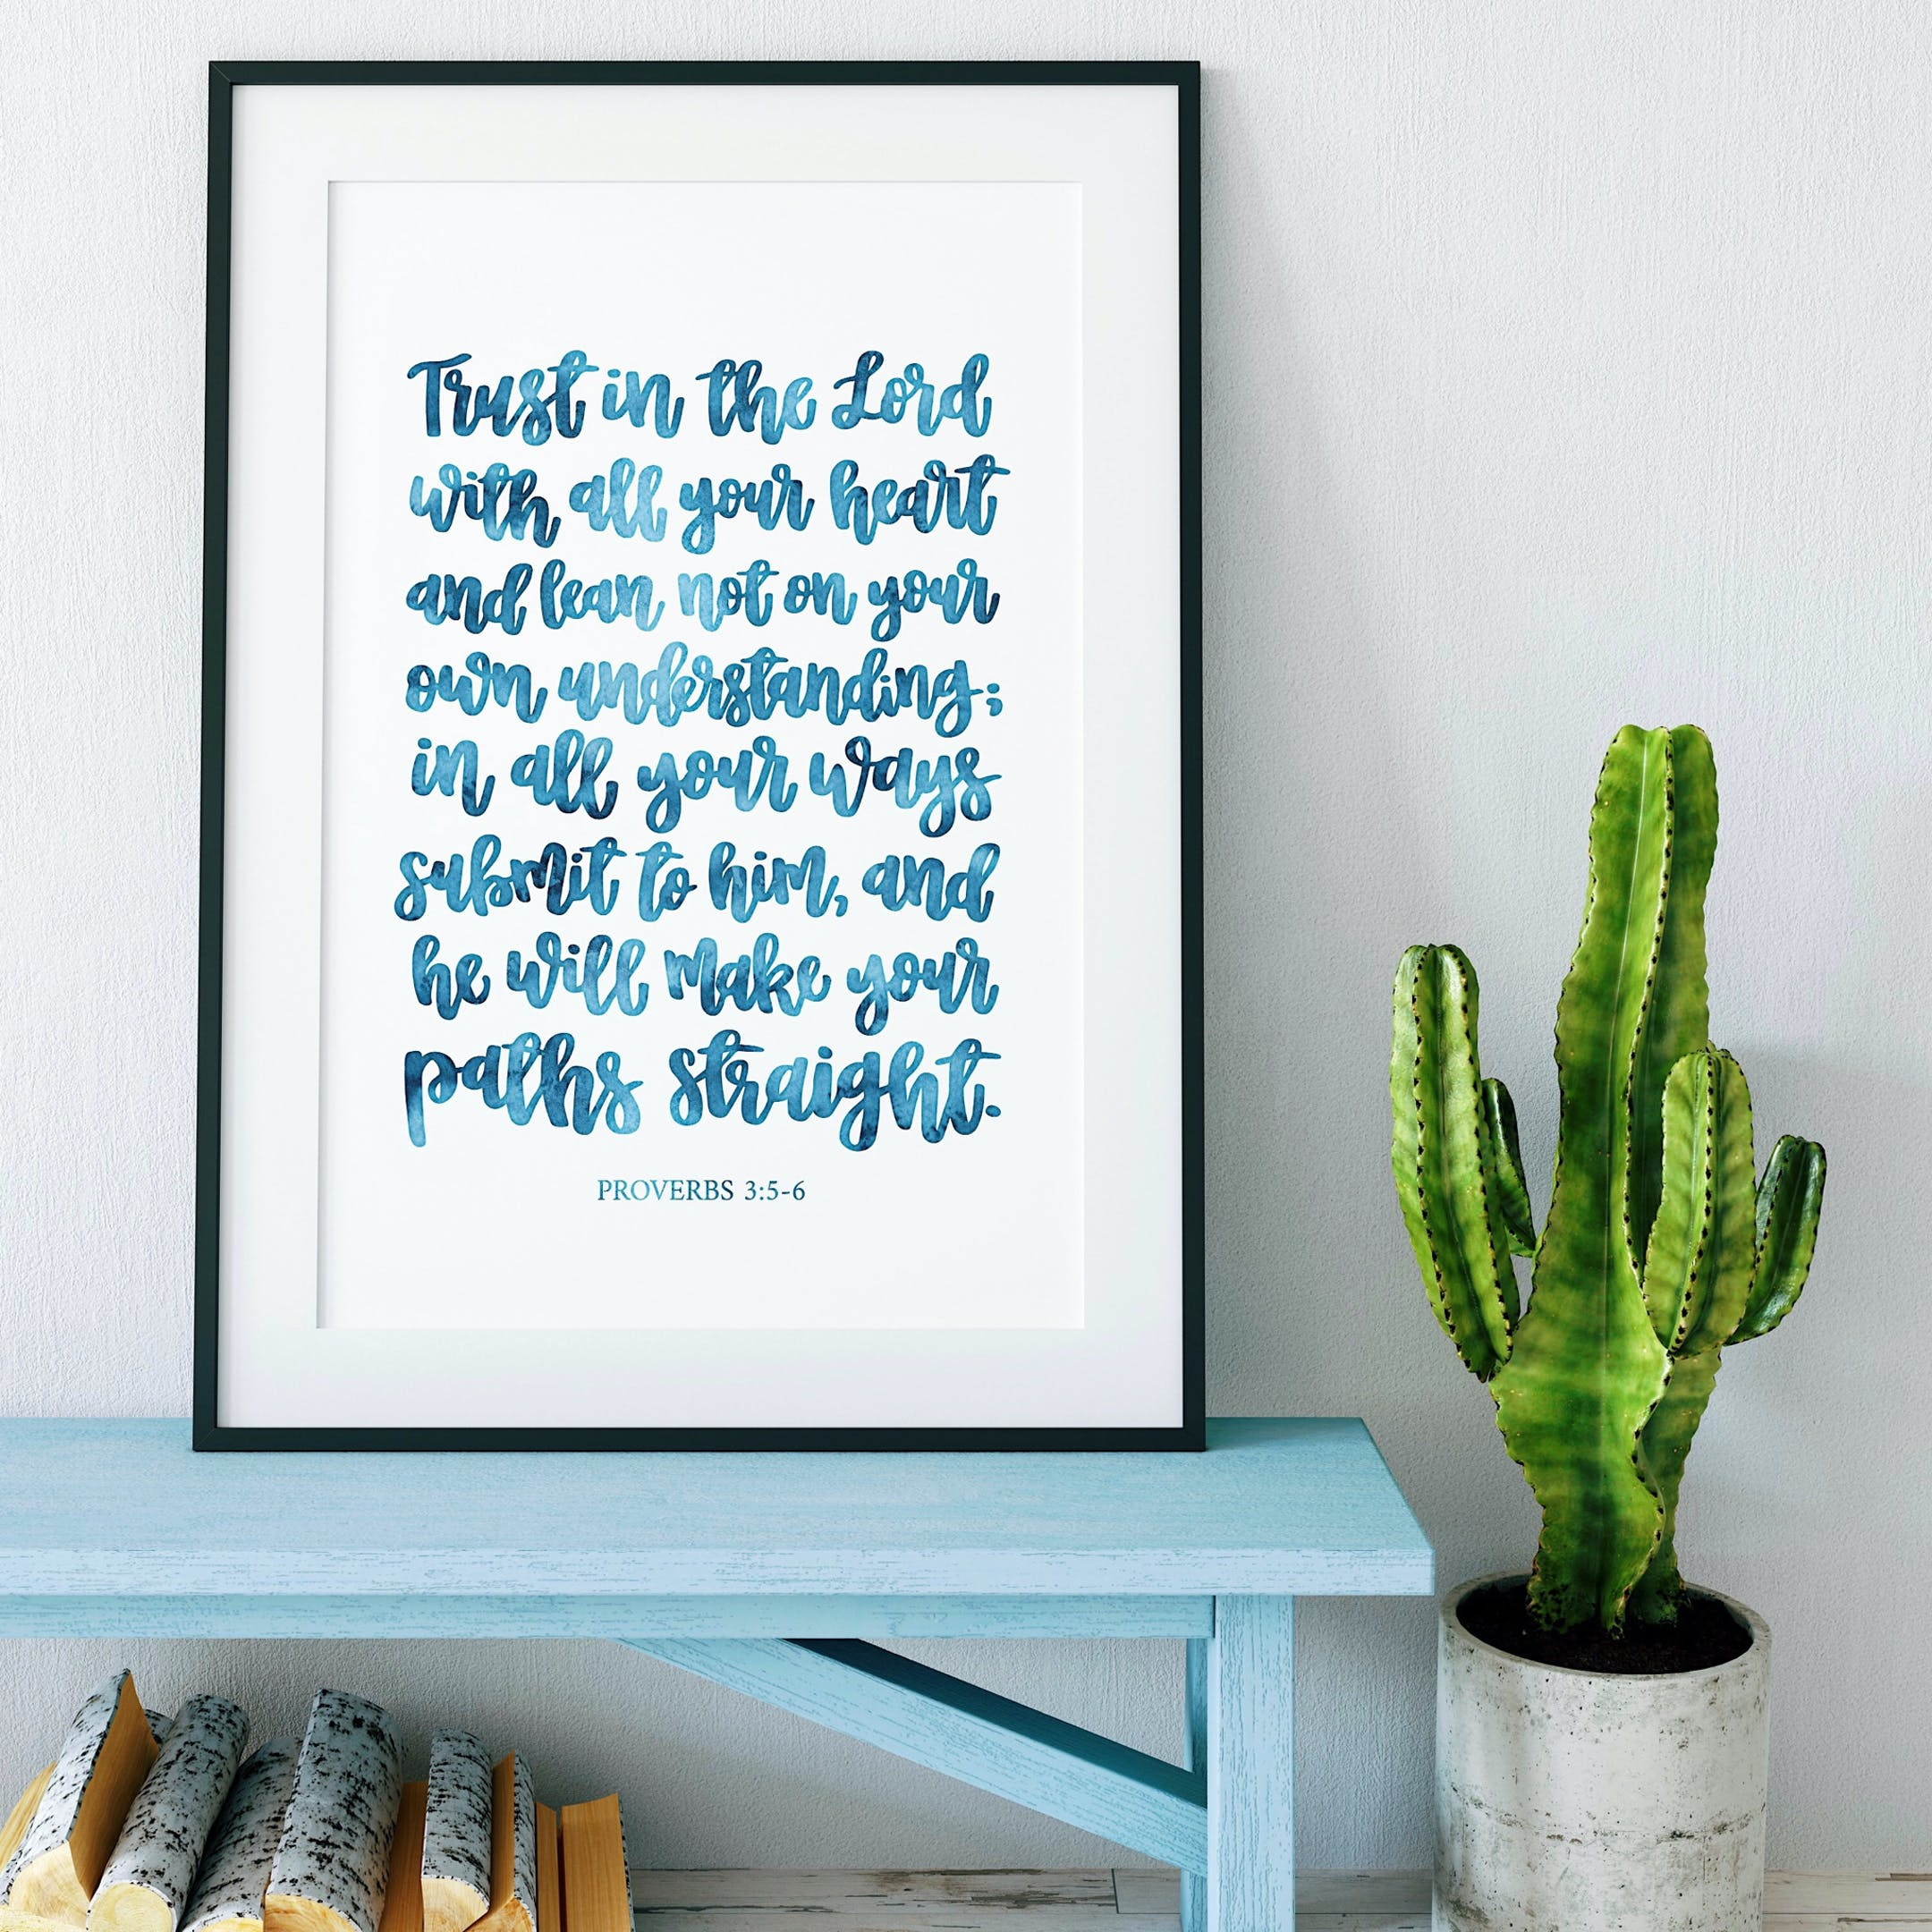 Blue Wash Trust In The Lord Calligraphy Print - Proverbs 3:5-6 - Izzy & Pop